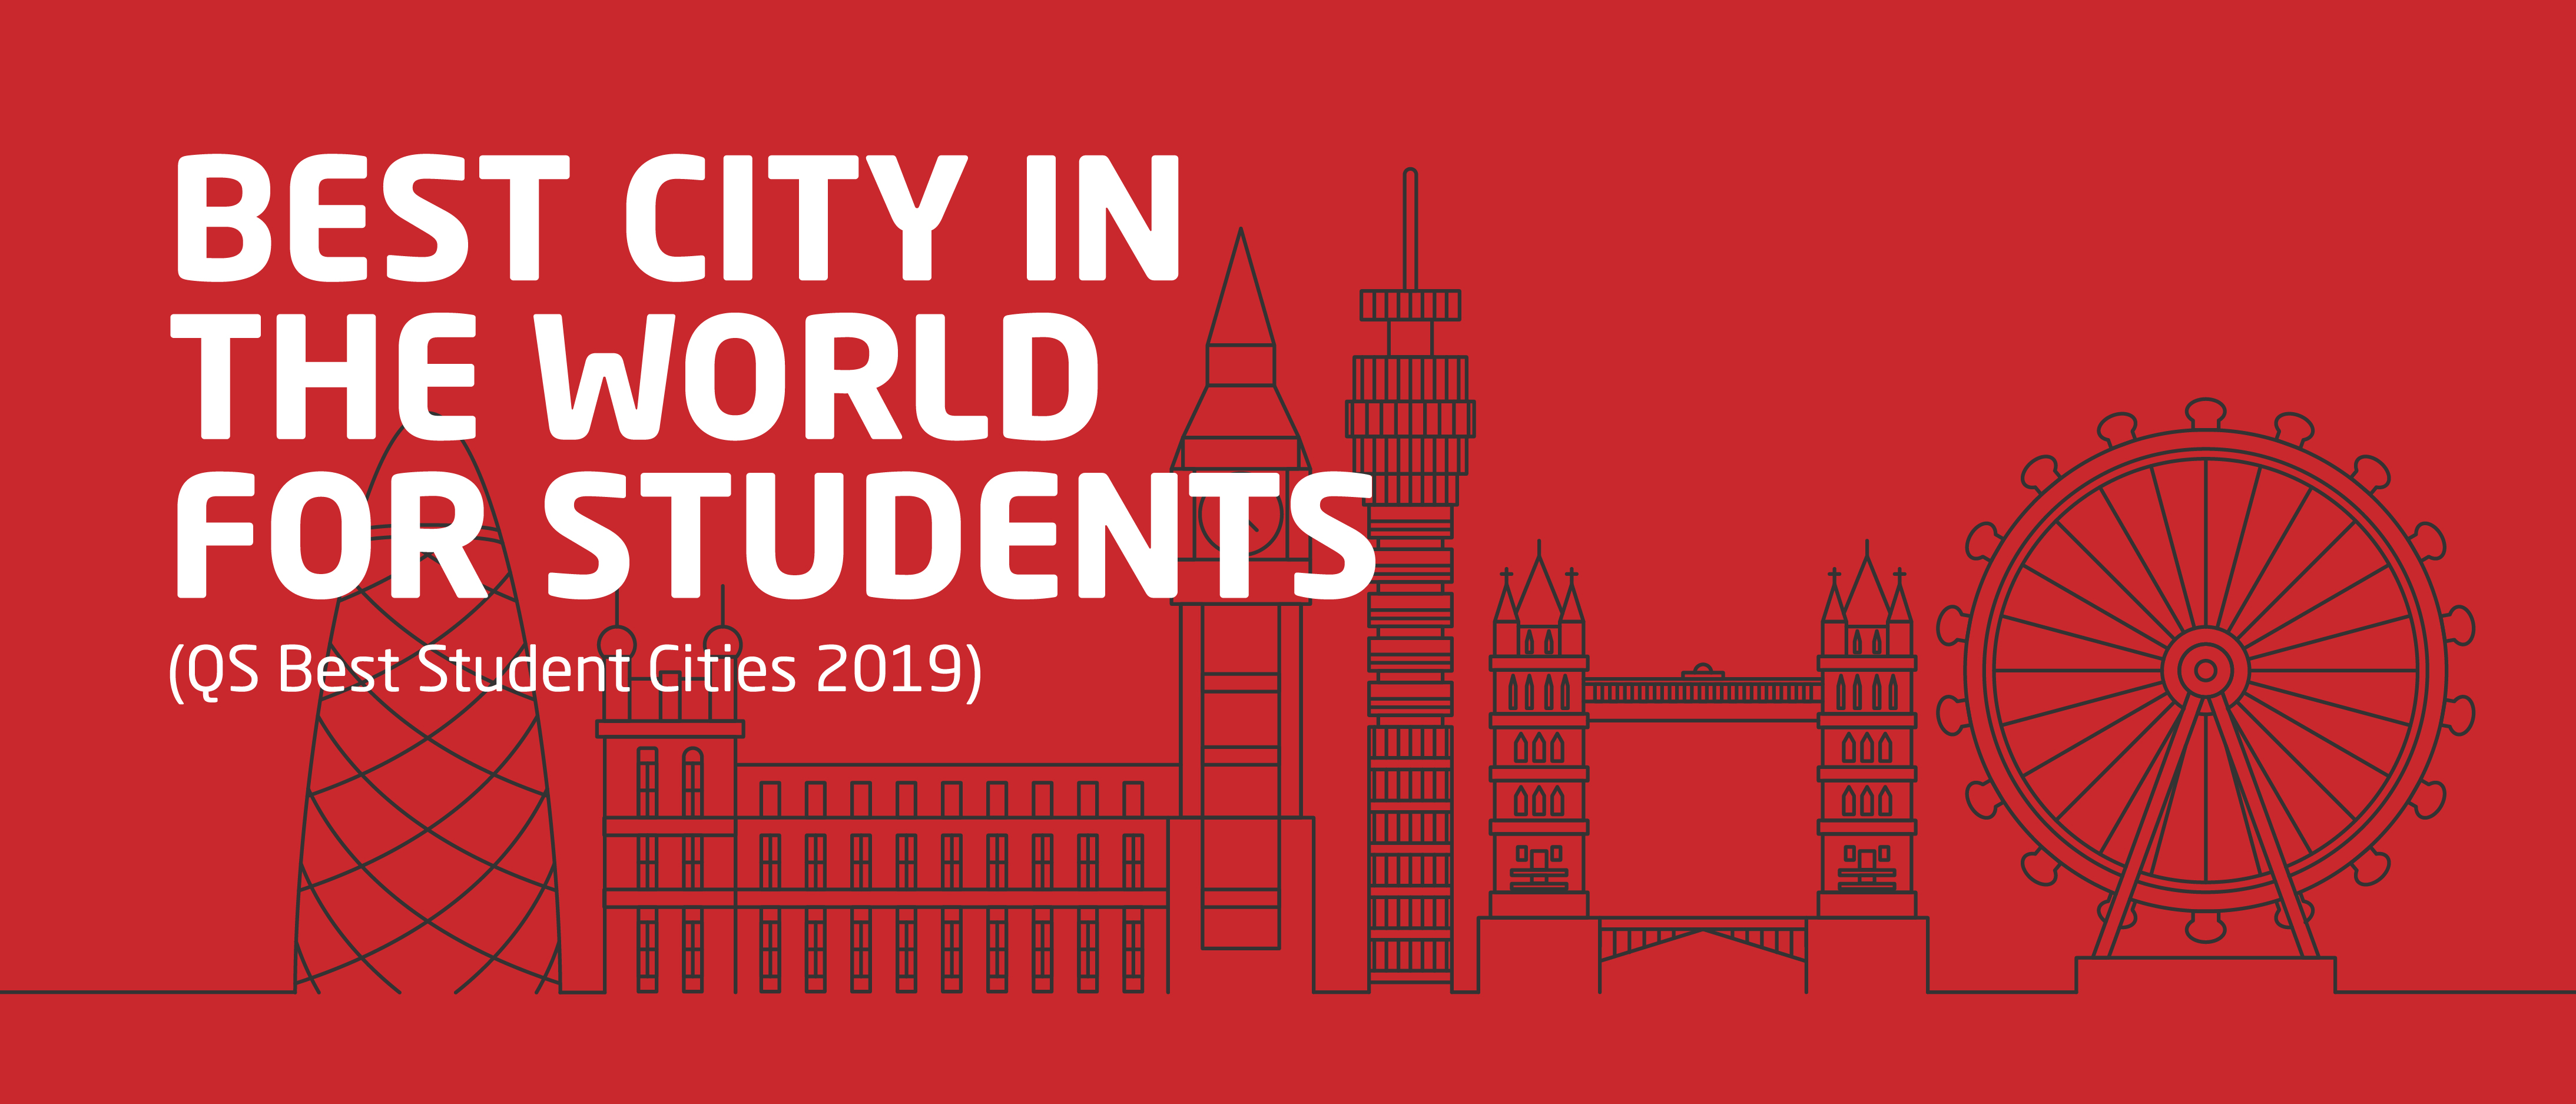 Best City in the World for Students (QS 2019)